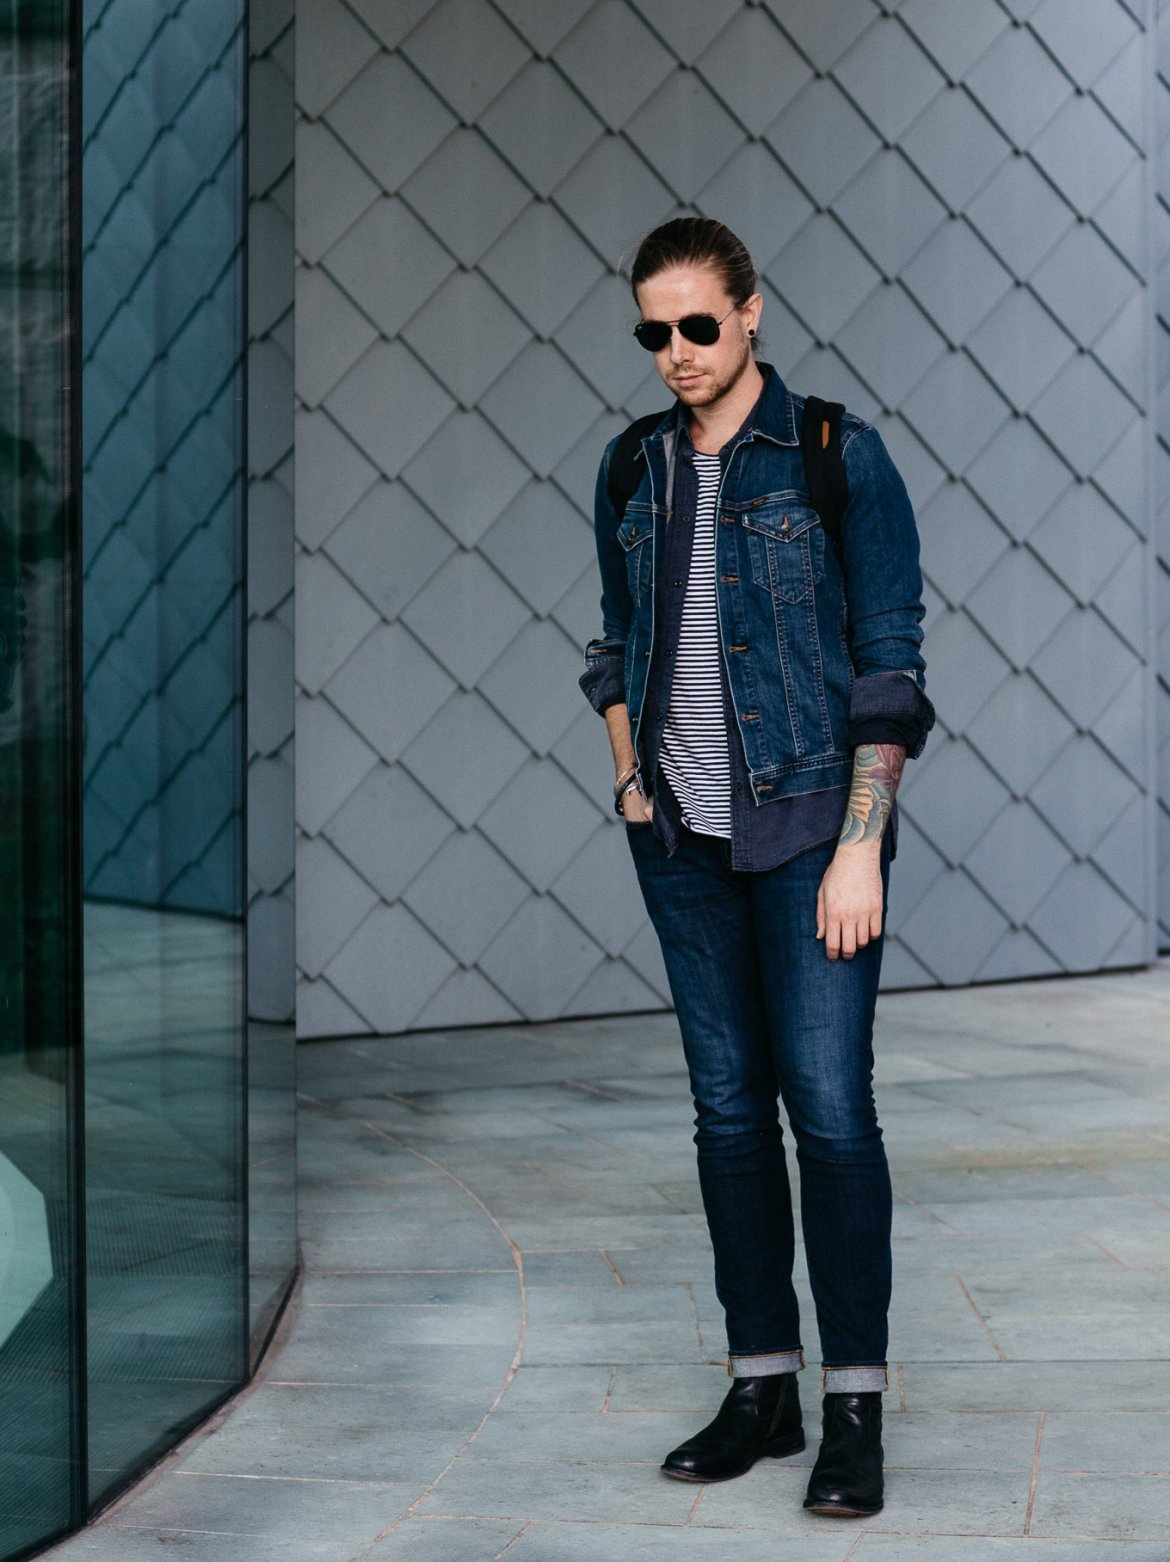 visit indy, #visitindy, indianapolis, midwestern travel, mens fall fashion